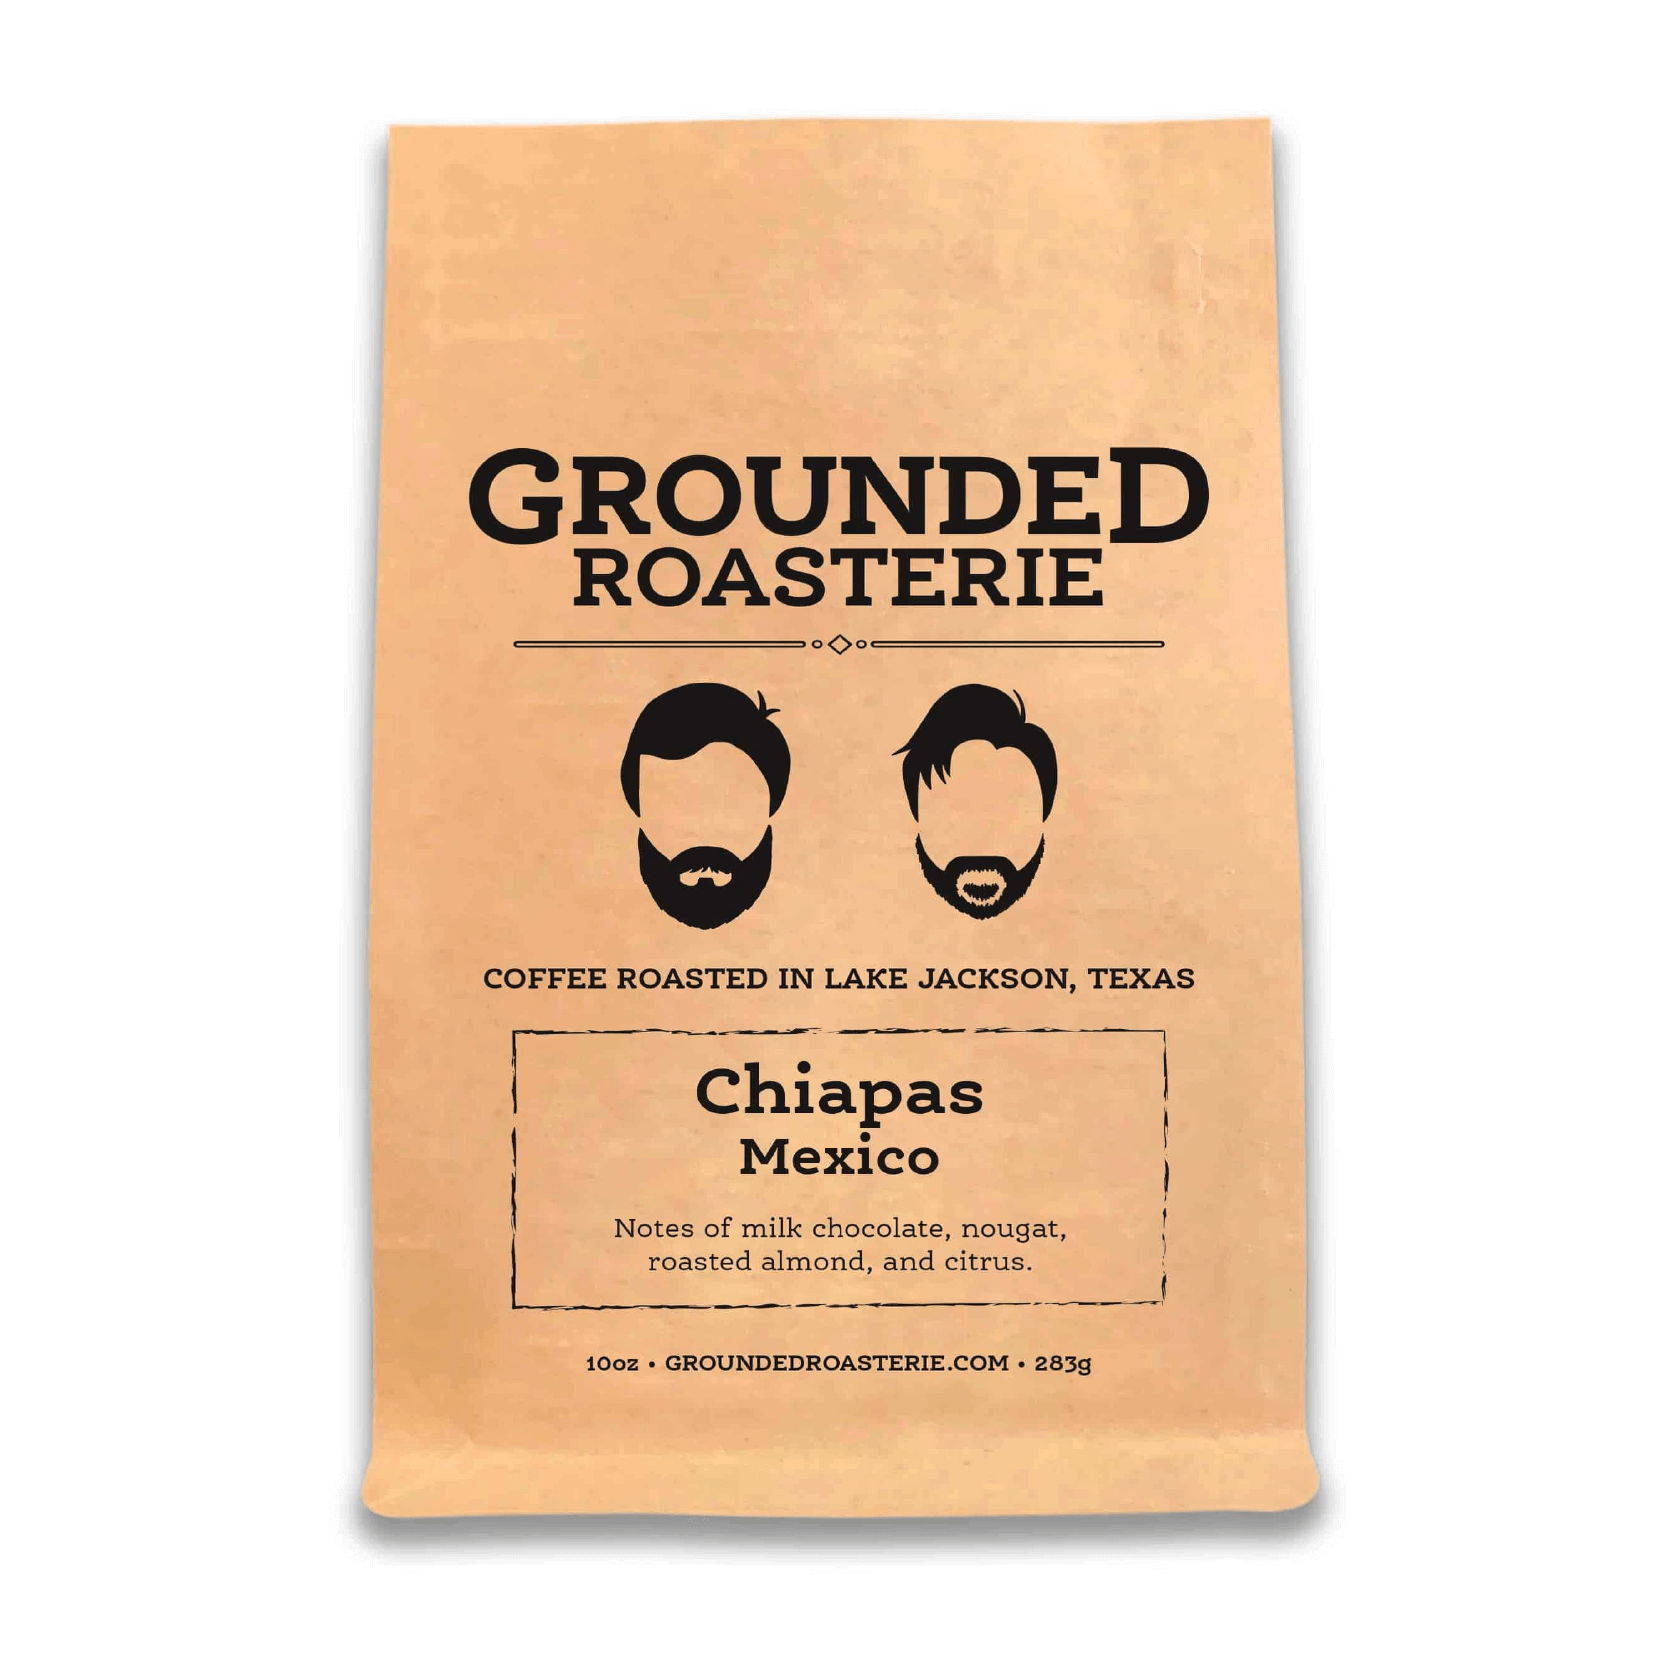 Mexico Chiapas from Grounded Roasterie